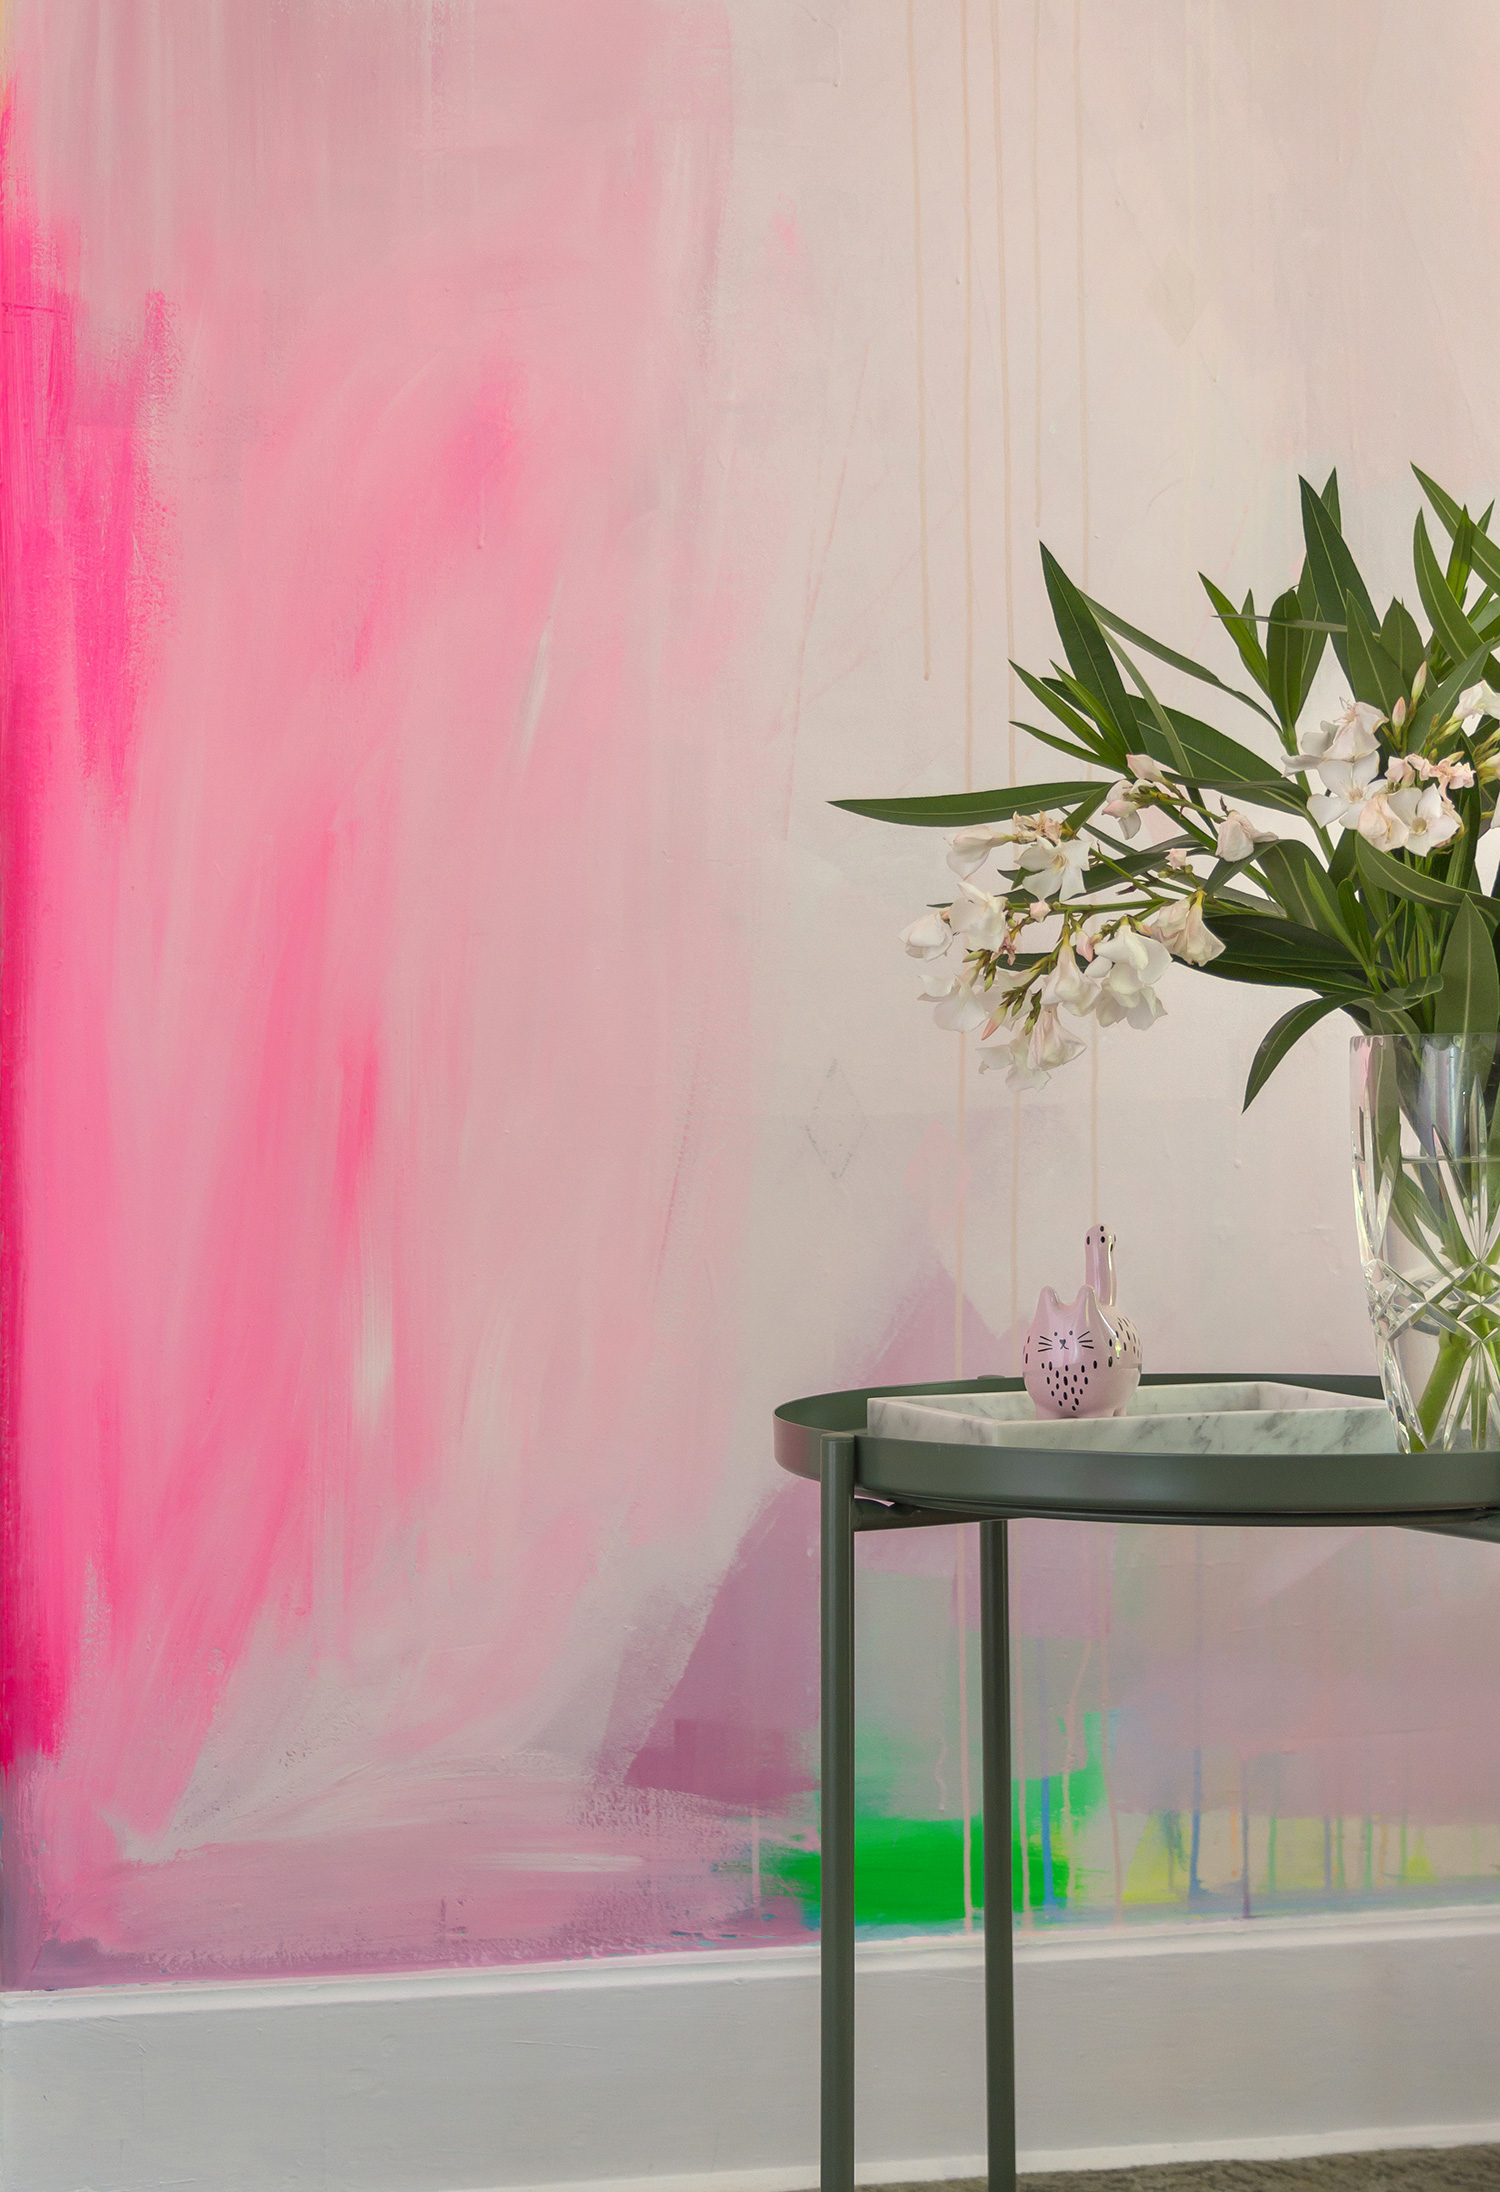 Modern abstract mural features splashes of pastel paint and pops of neon pink and green. Sage green table with foliage is styled in front of the mural.